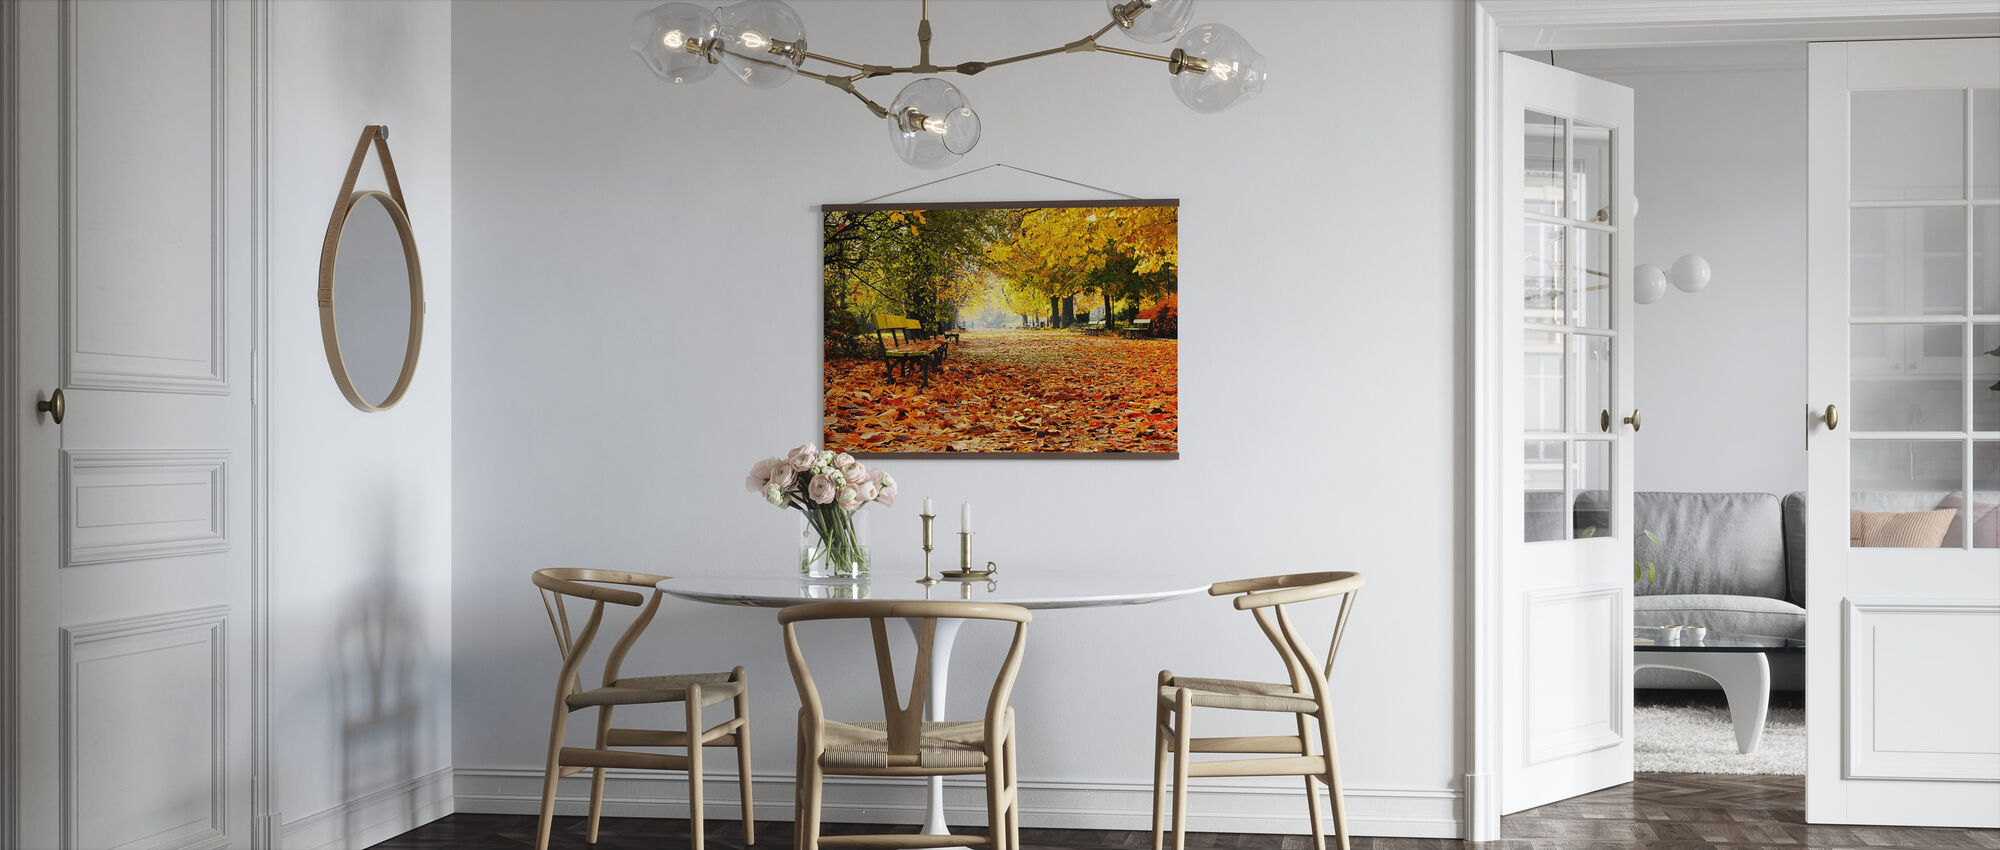 Autumn Park - Poster - Kitchen